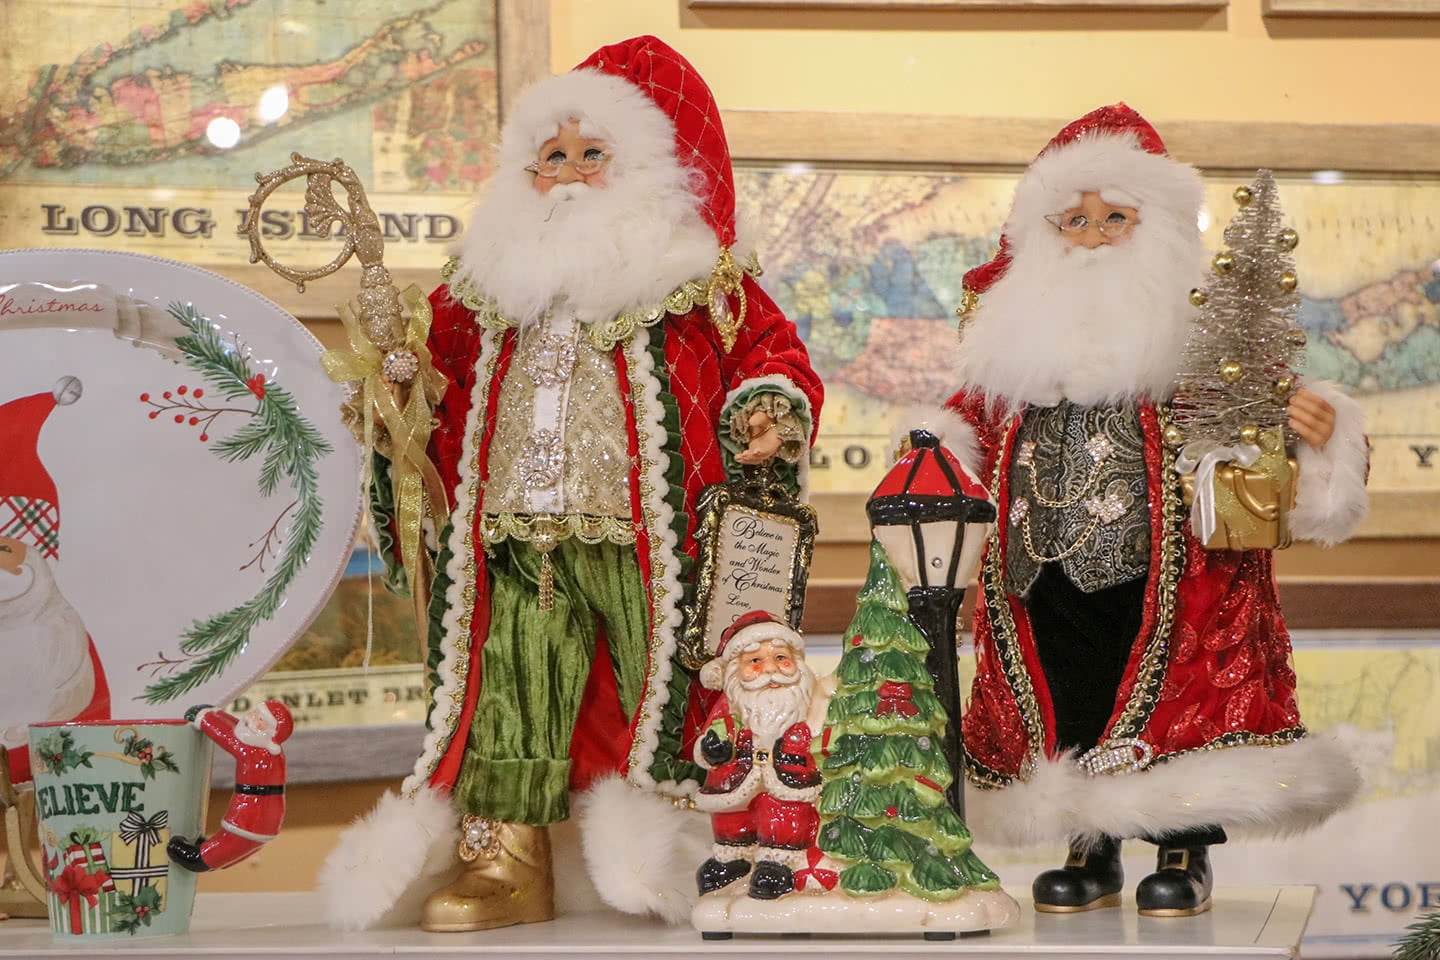 The Long Island Holidays is Claus For Celebration with Ole Fashion Santa Figurines